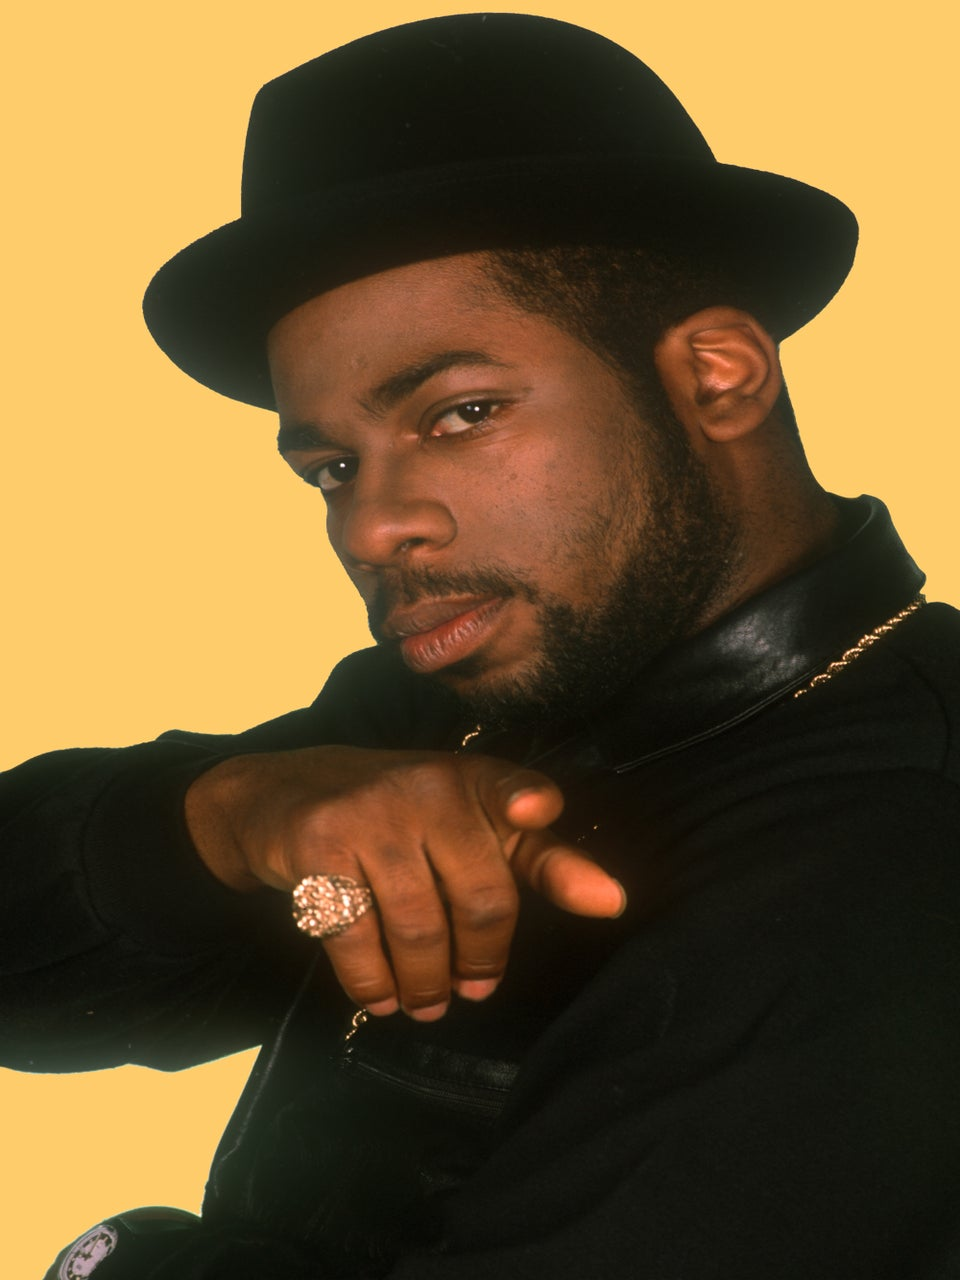 The Quick Read: Jam Master Jay's Murder Officially Ruled A Cold Case